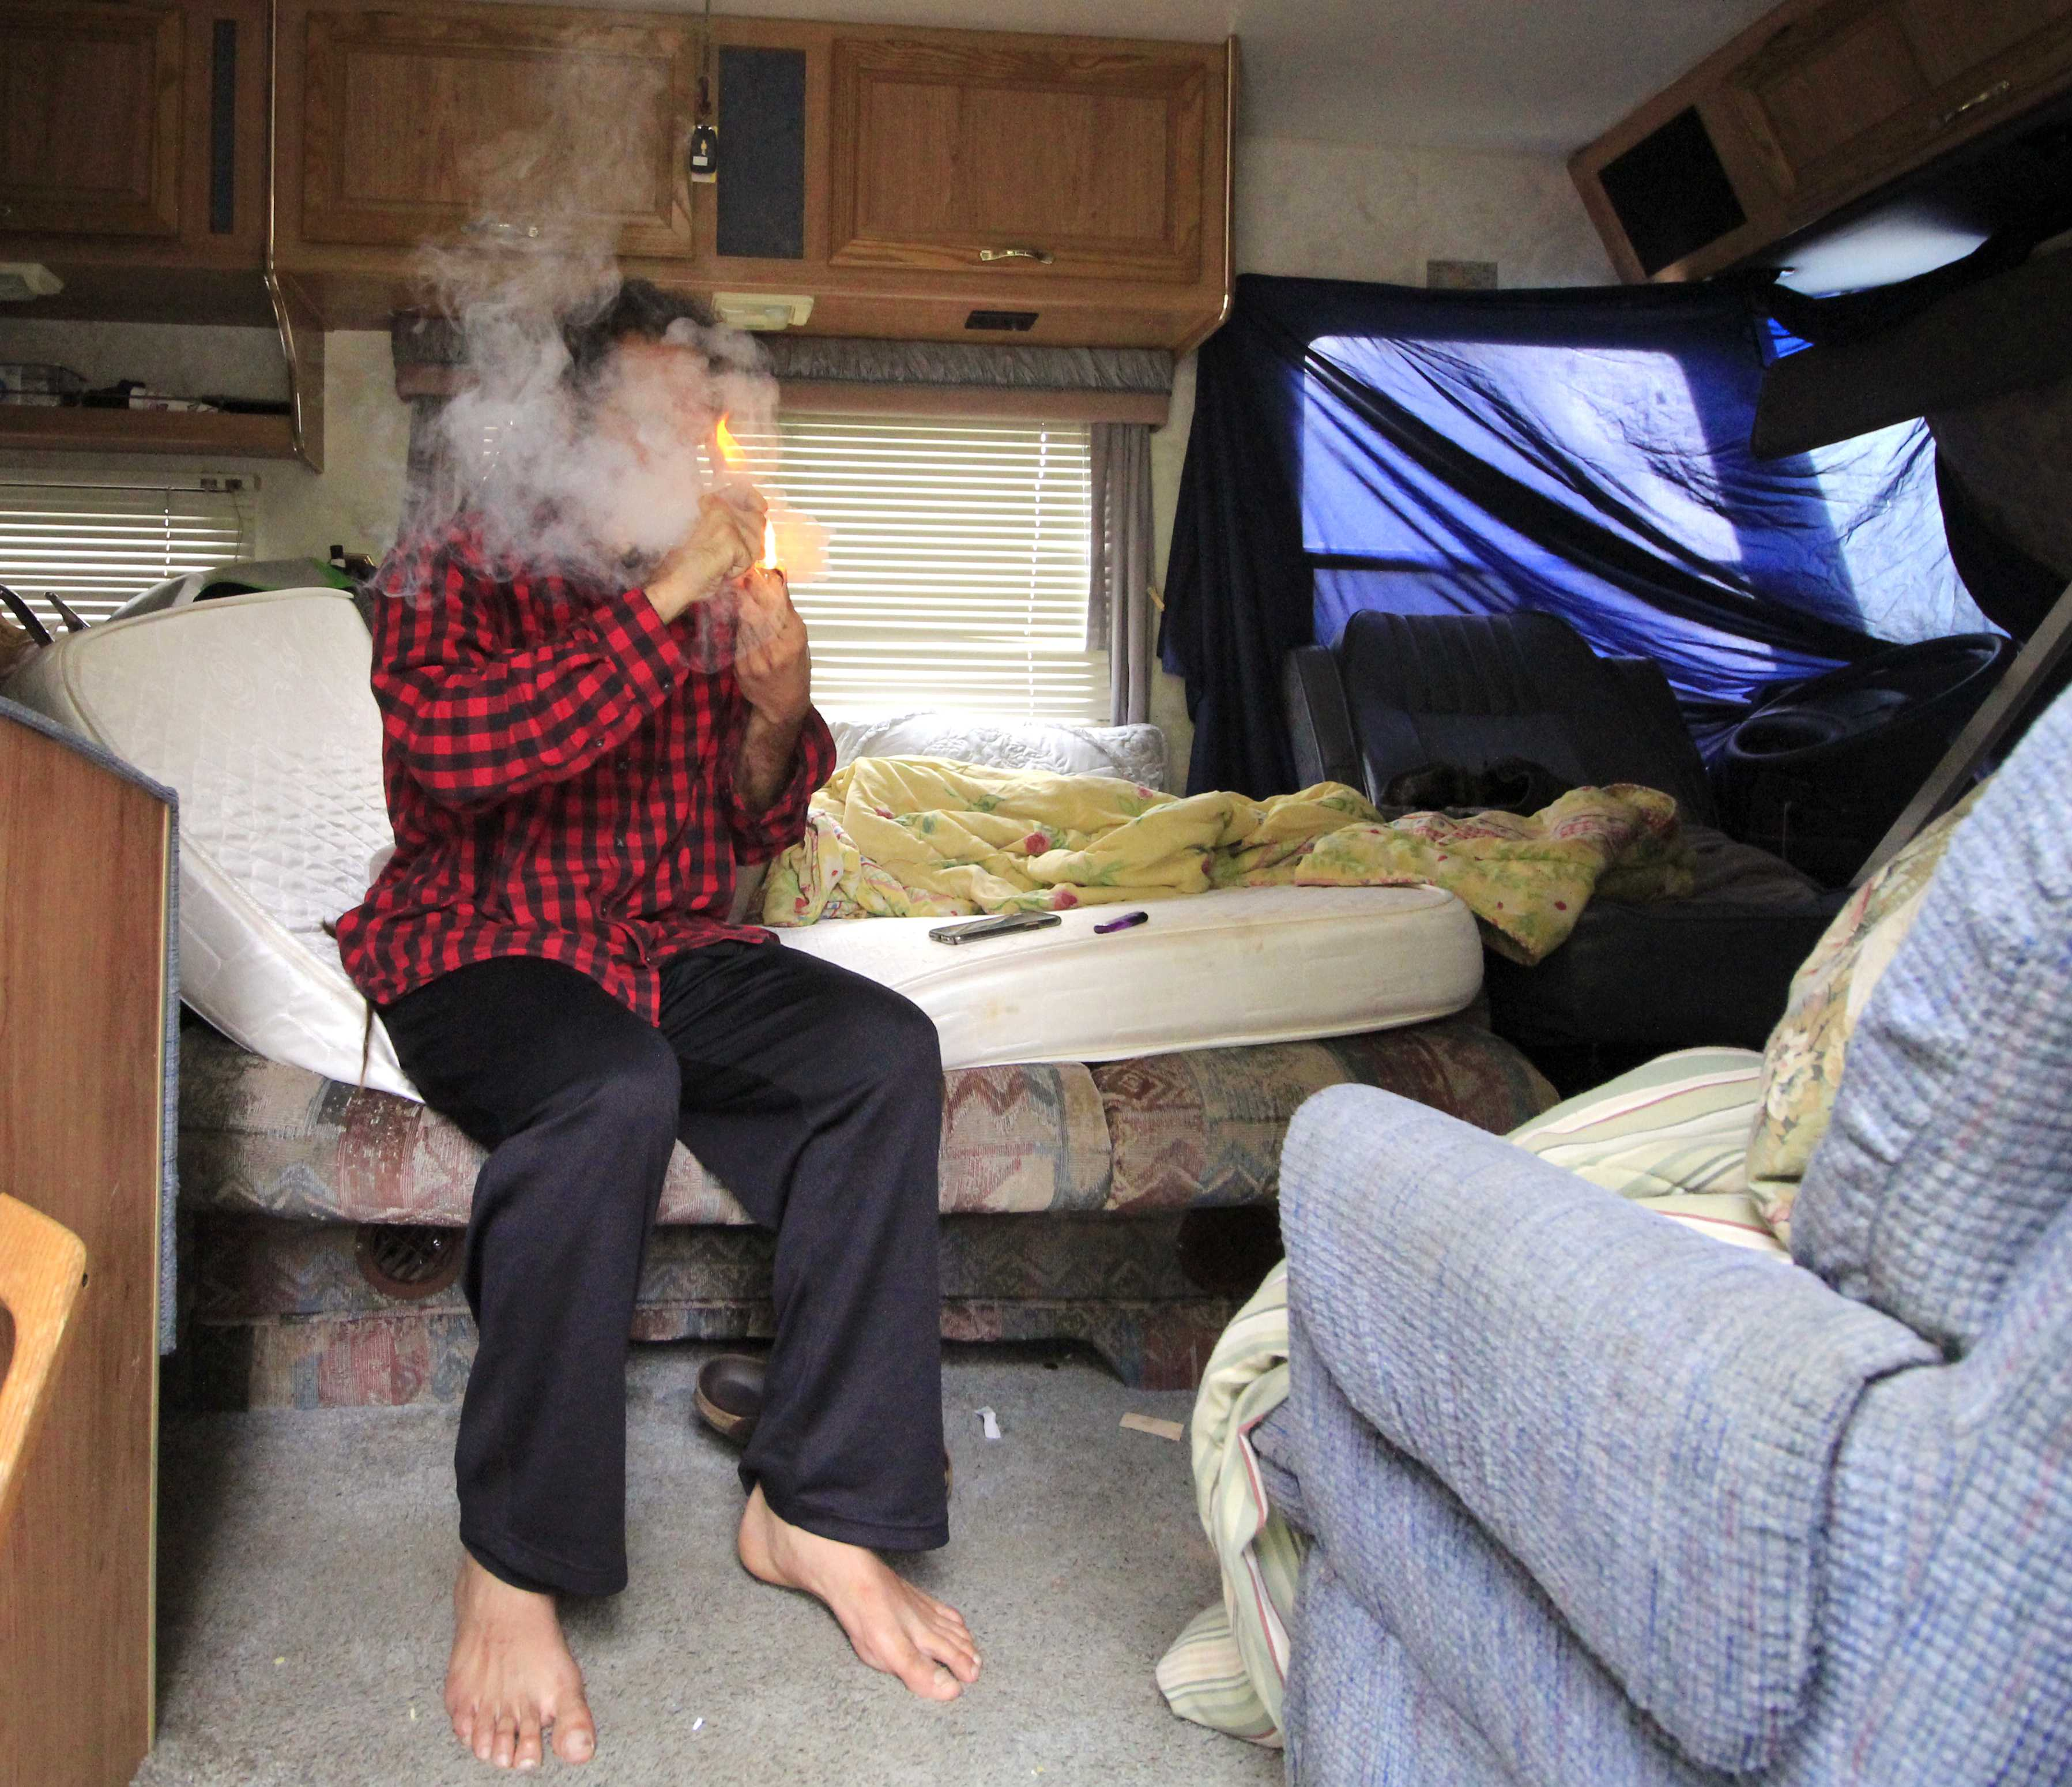 Juan Martinez, who moved to San Francisco from Brazil, smokes cannabis inside his motorhome parked on Lake Merced Boulevard on Monday, Sept. 3. Martinez is one of many who are living out of their vehicles, either by choice or who are forced to, because of the lack of affordable housing in the Bay Area. (Lindsey Moore/Golden Gate Xpress)